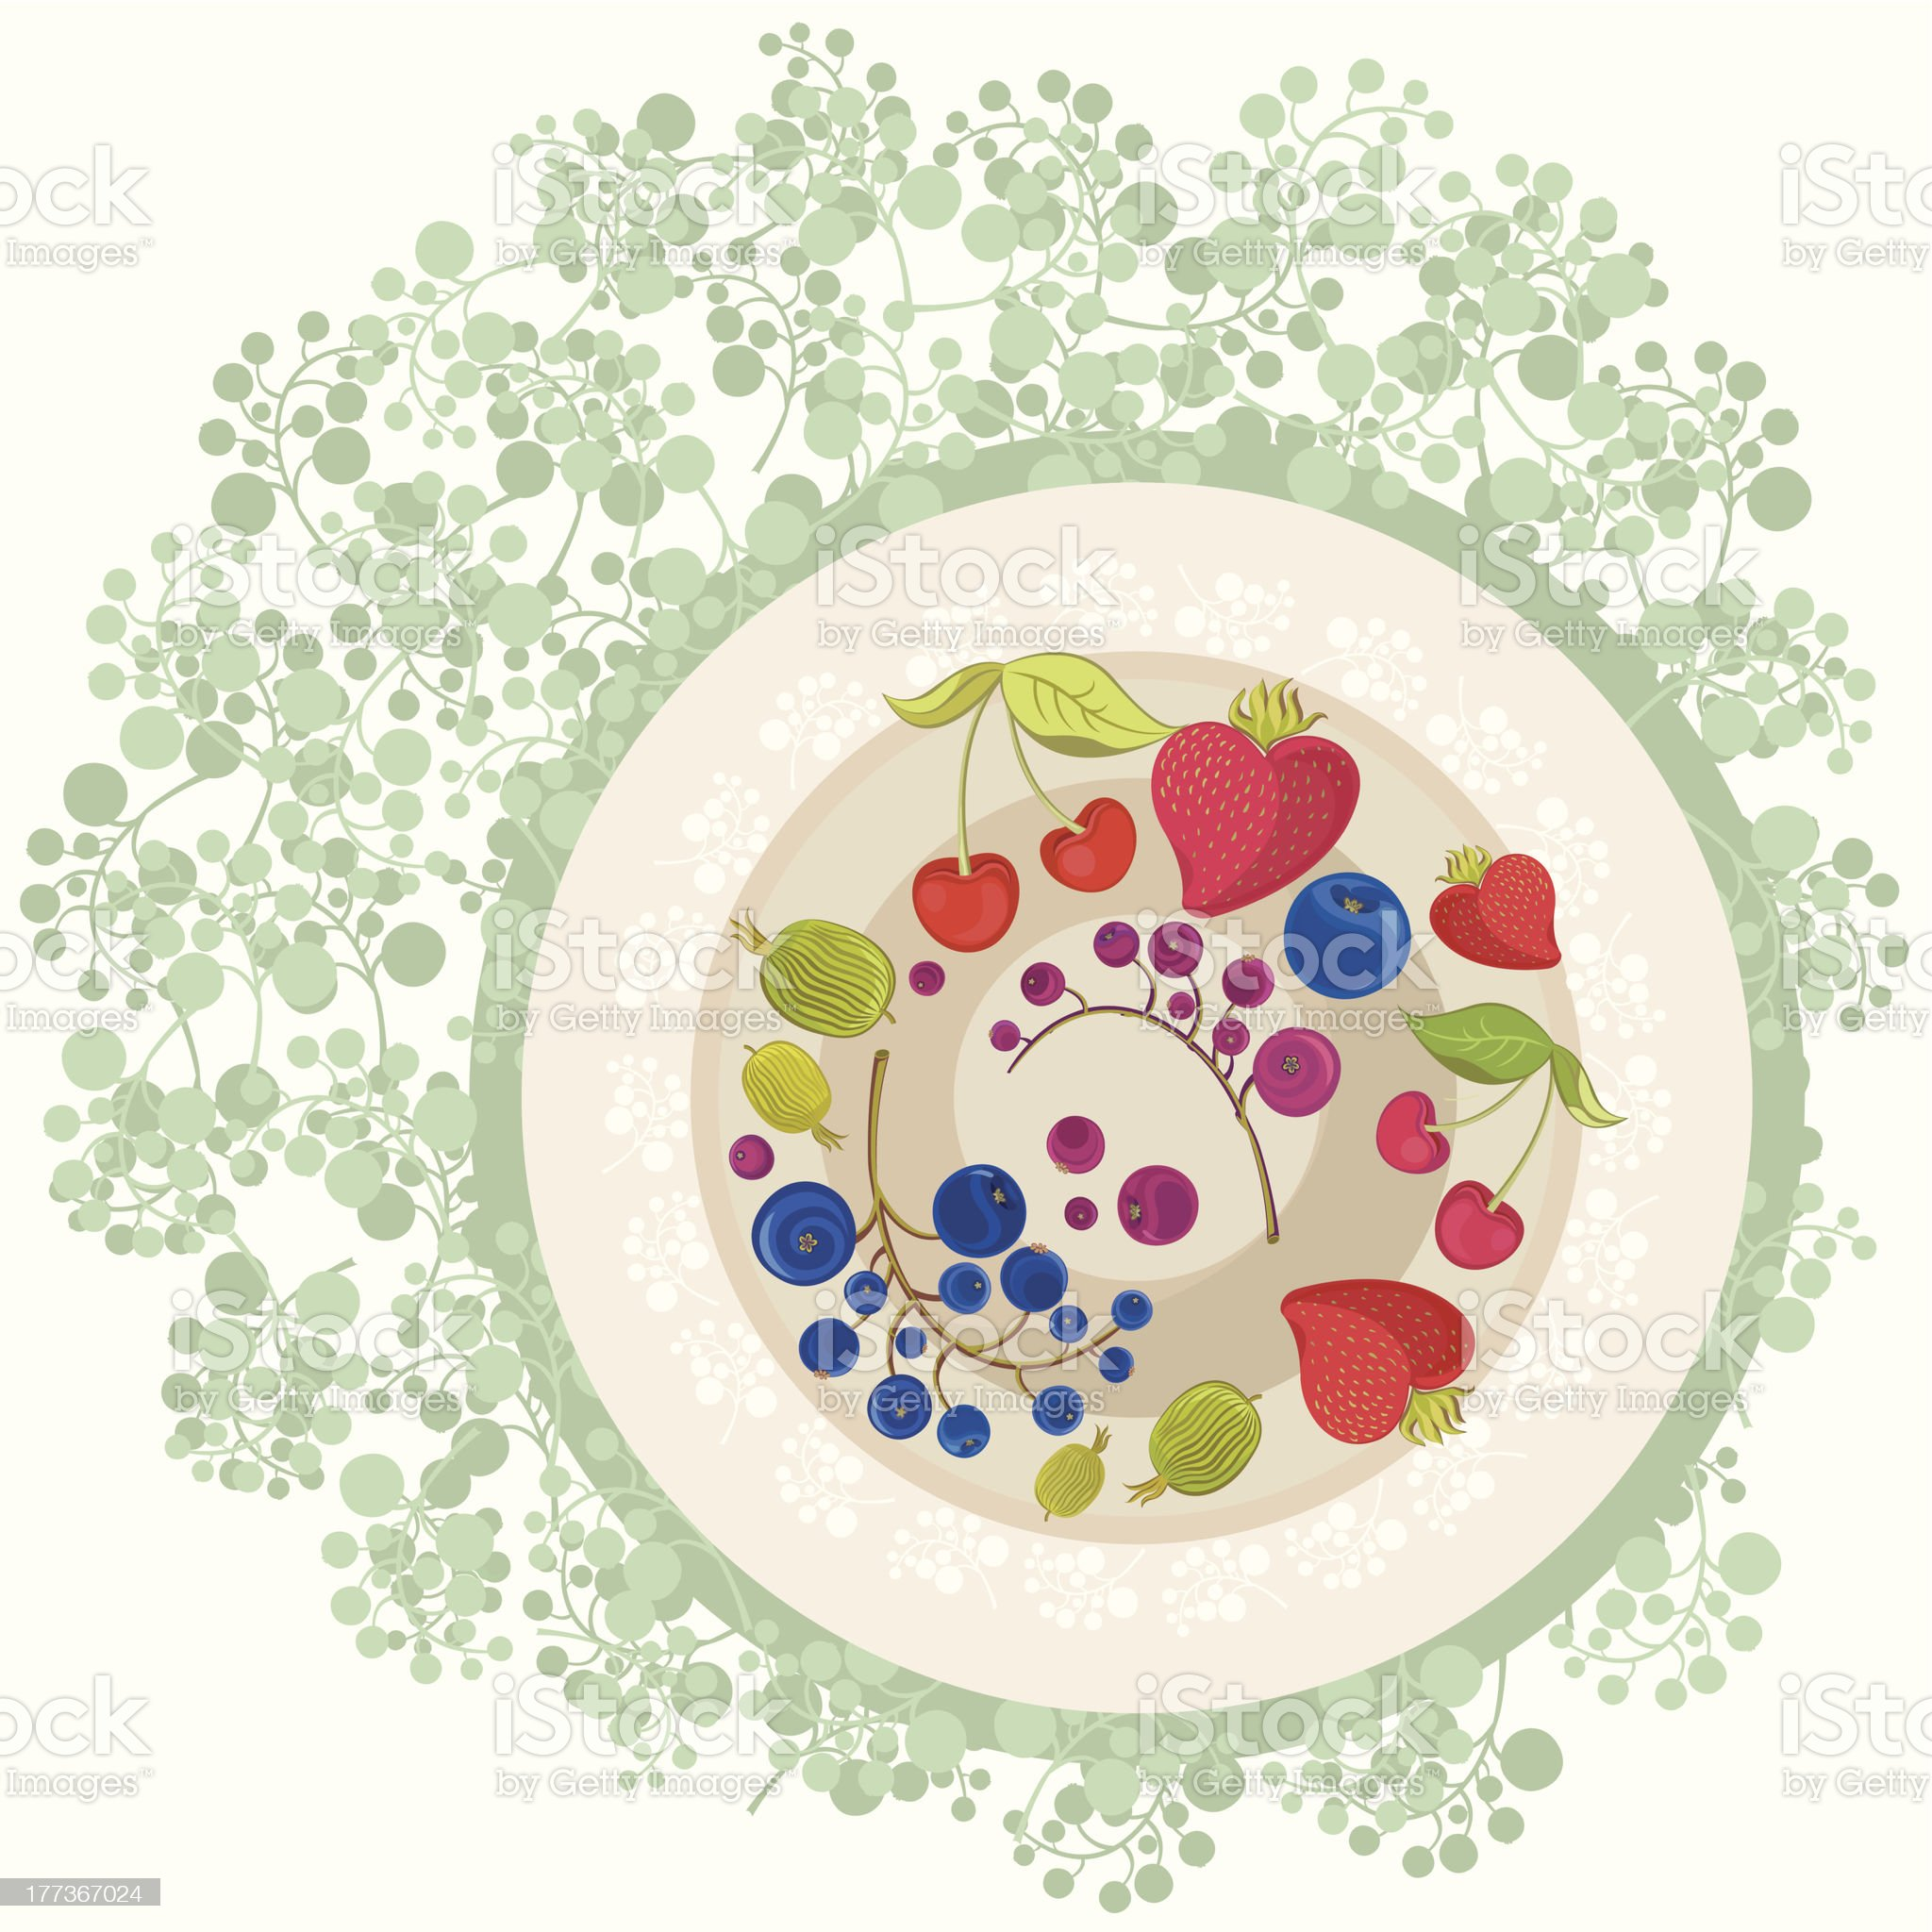 Berries on the Plate royalty-free stock vector art